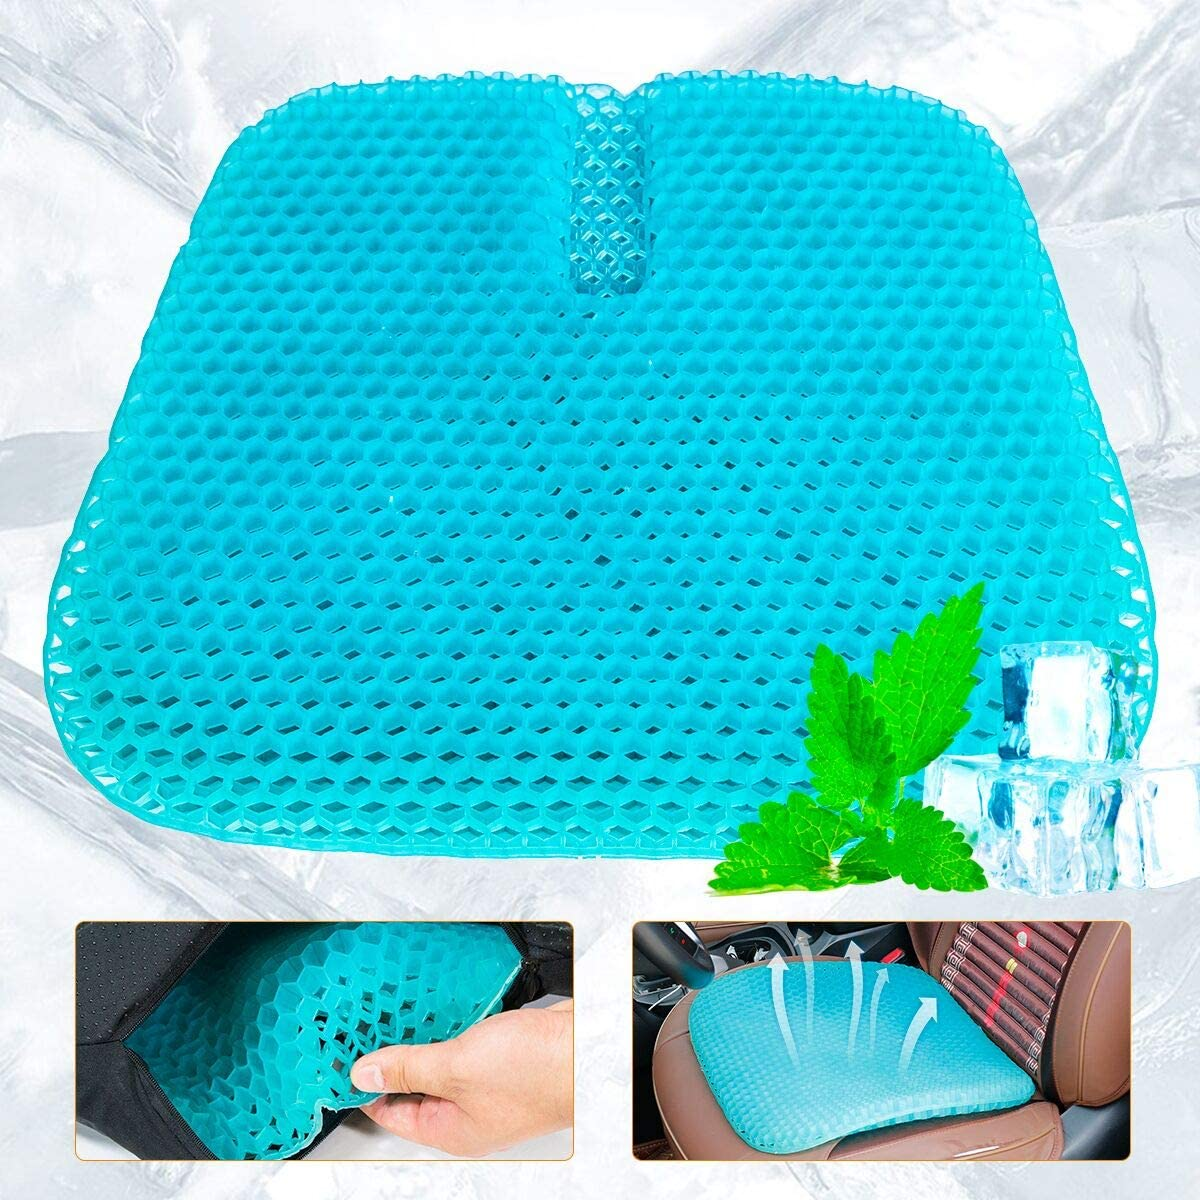 Blumoo Large Size Gel Seat Cushion, Double Thick Honeycomb Office Cushion Seat Cushion Pad Breathable Car Home Gel Cushion Relief Back Pain Gel Cushion